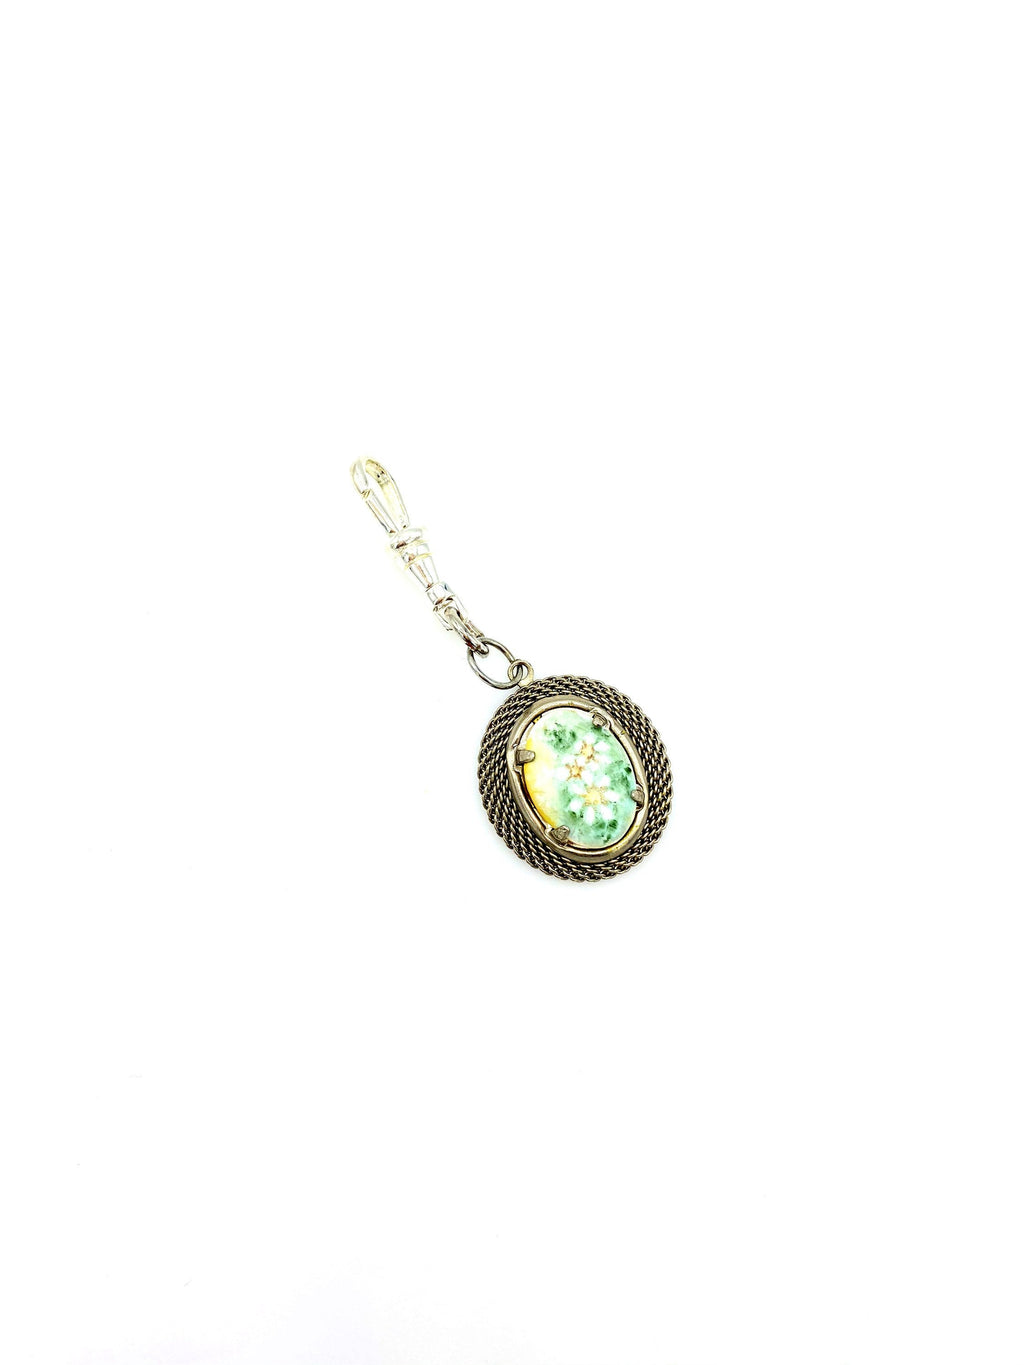 Silver Painted Daisy Victorian Revival Charm Swivel Fob Jewelry